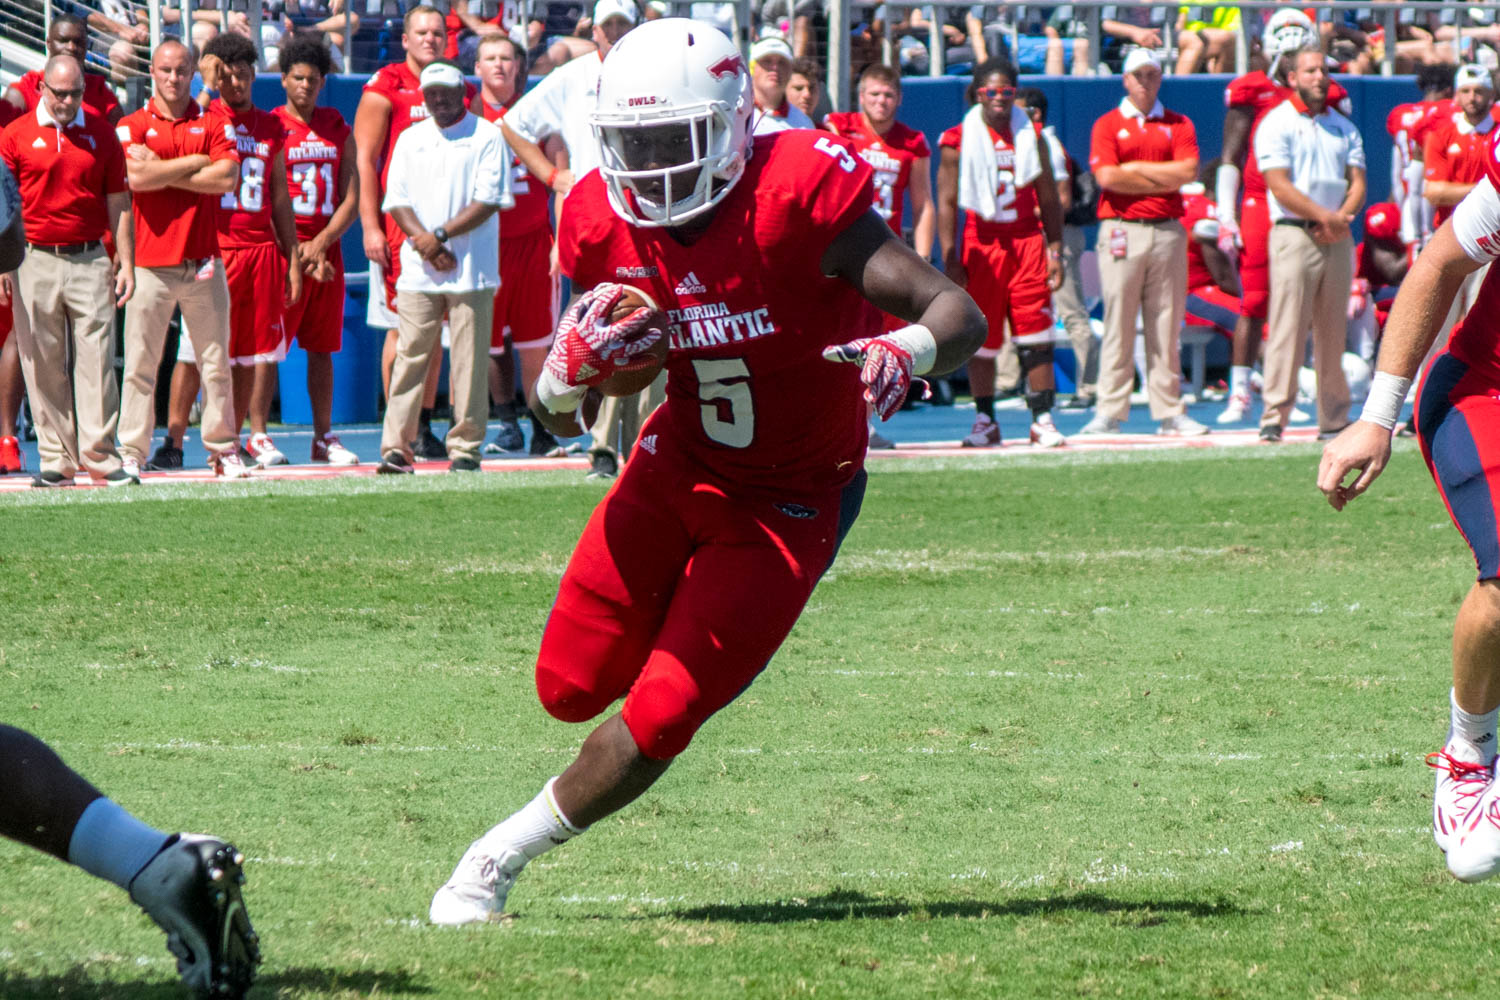 Devin Singletary runs through an open path in the Owls offensive line. The freshman gained 25 total yards on seven rush attempts during the loss.